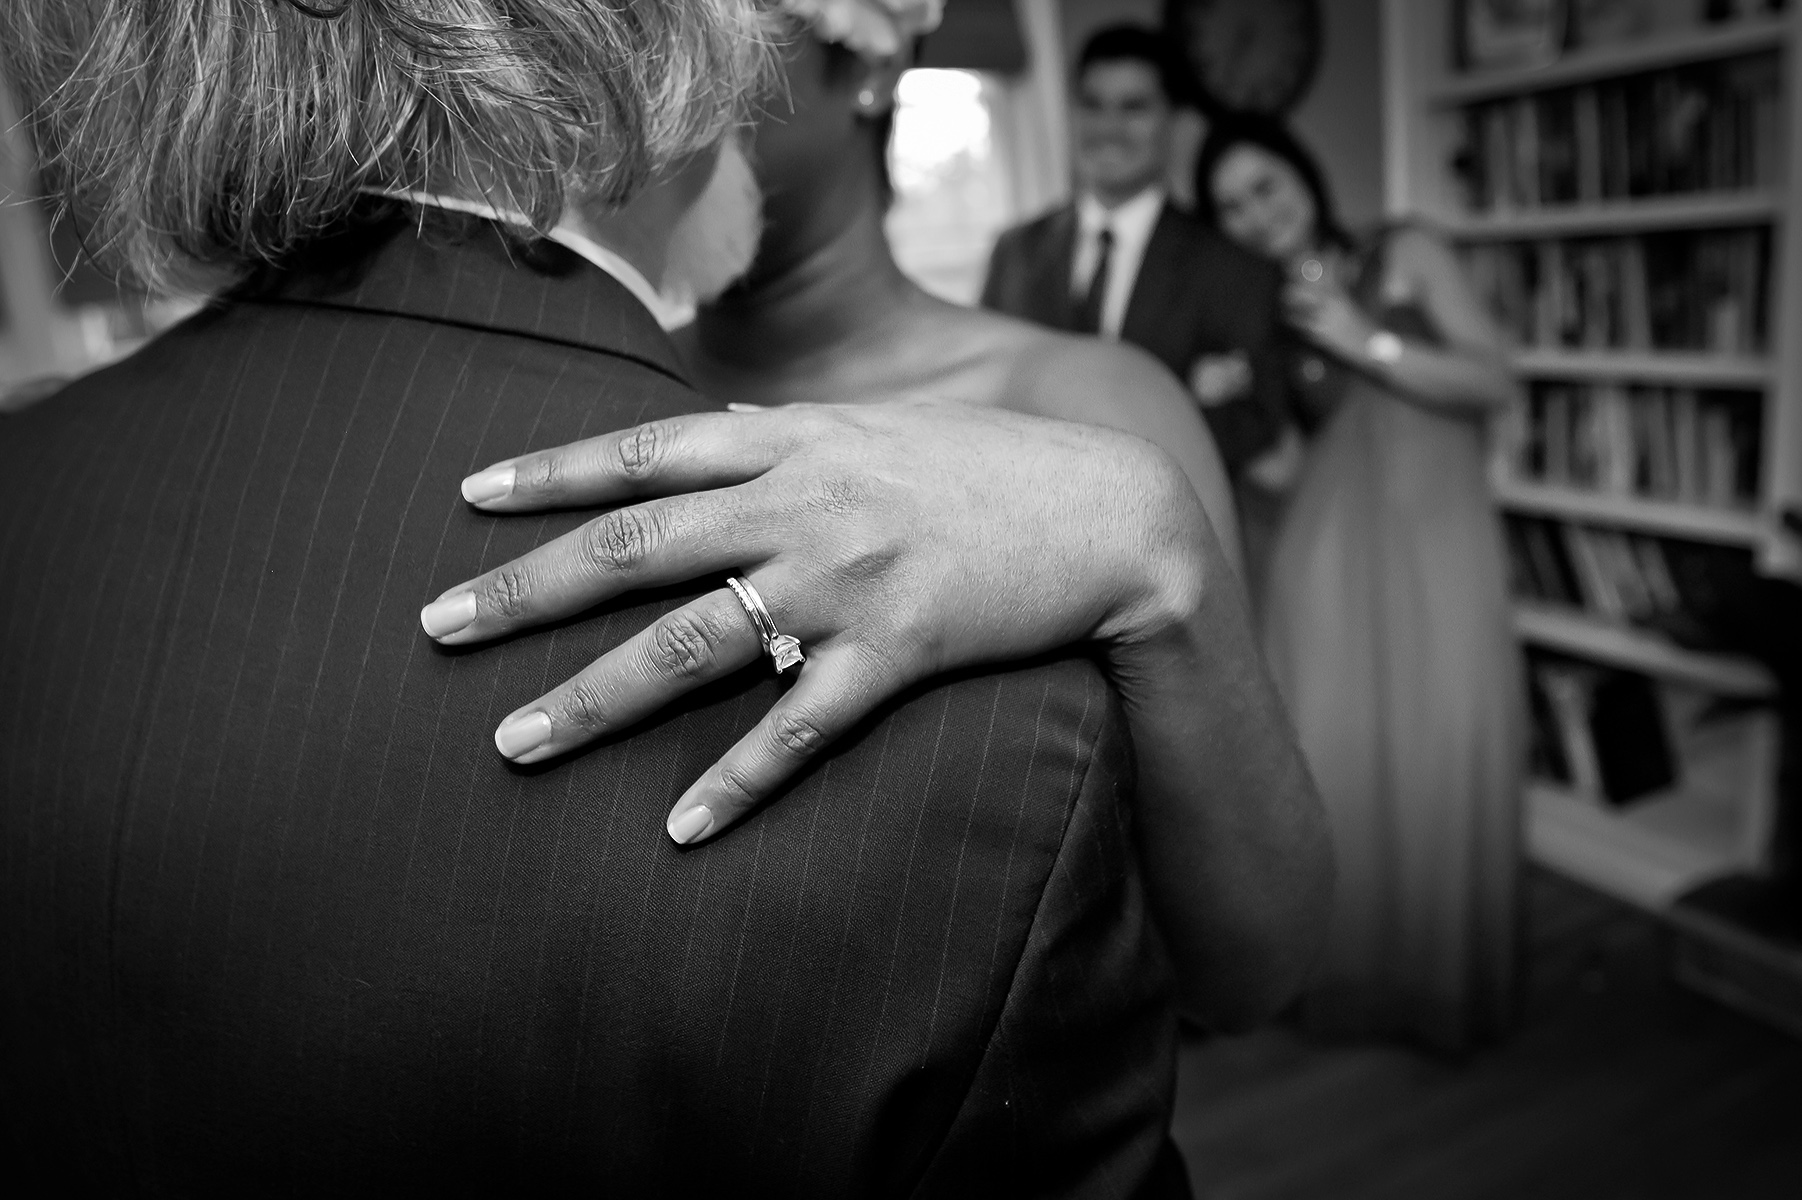 Georgia Home Wedding Photo - Sandy Springs Pro | Her wedding ring at the forefront symbolizing unity and eternity